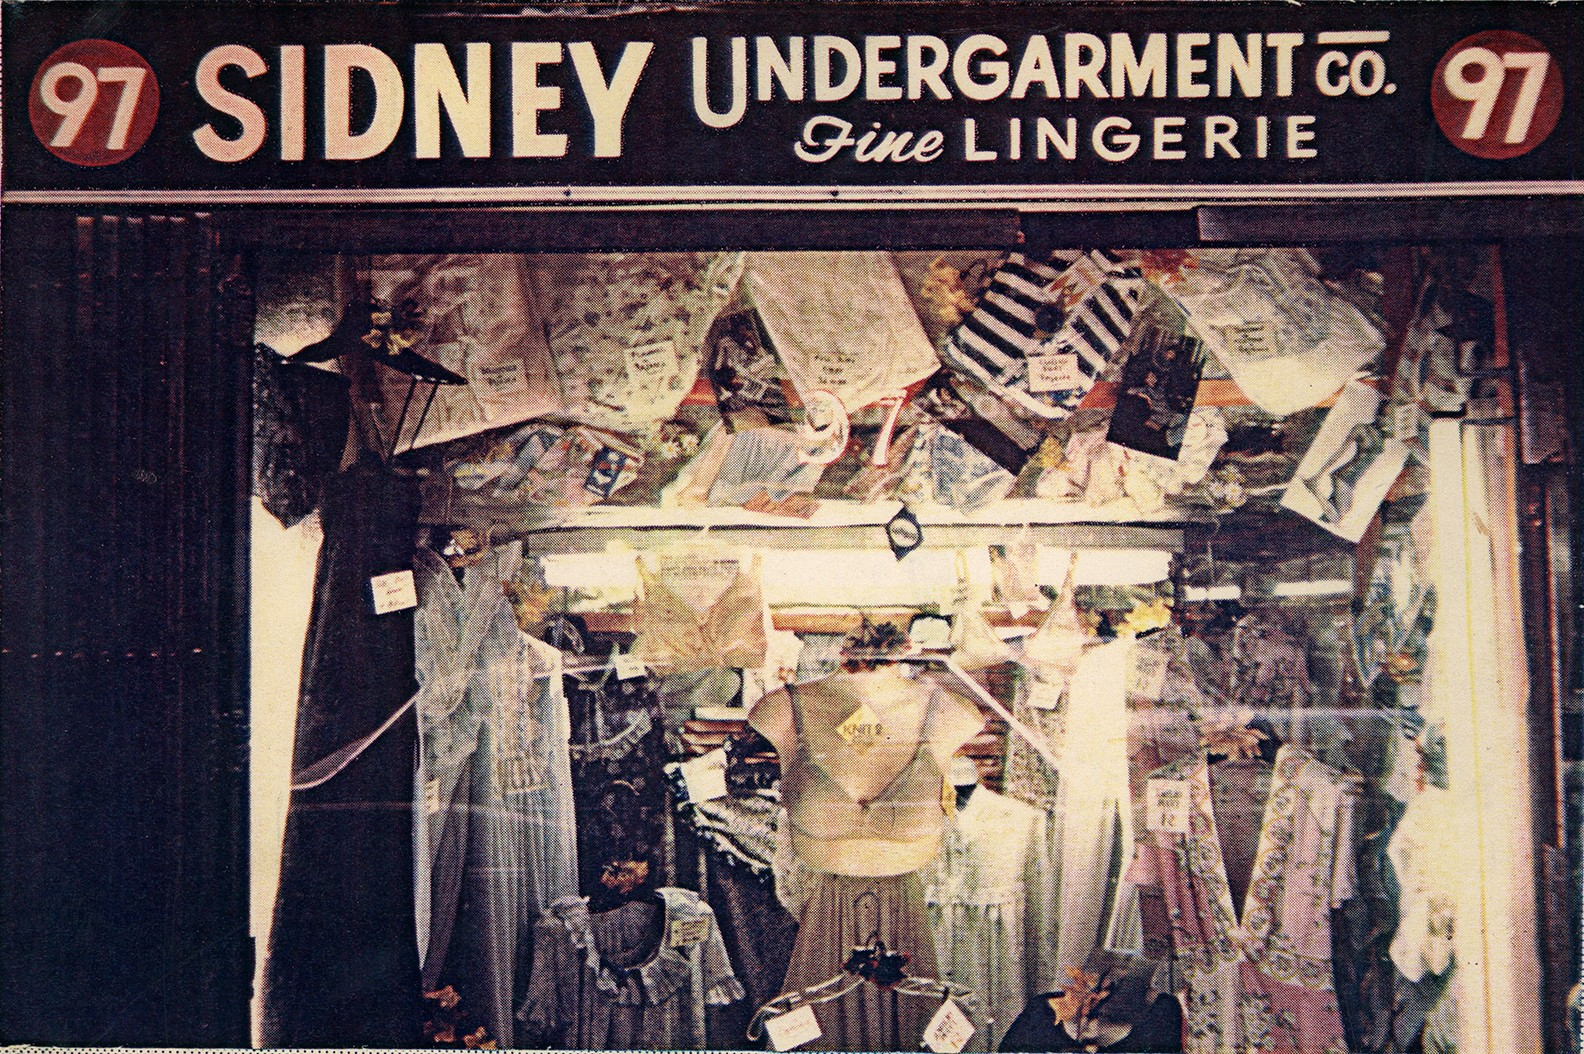 An exterior photo of the Sidney Undergarment Company storefront at 97 Orchard Street